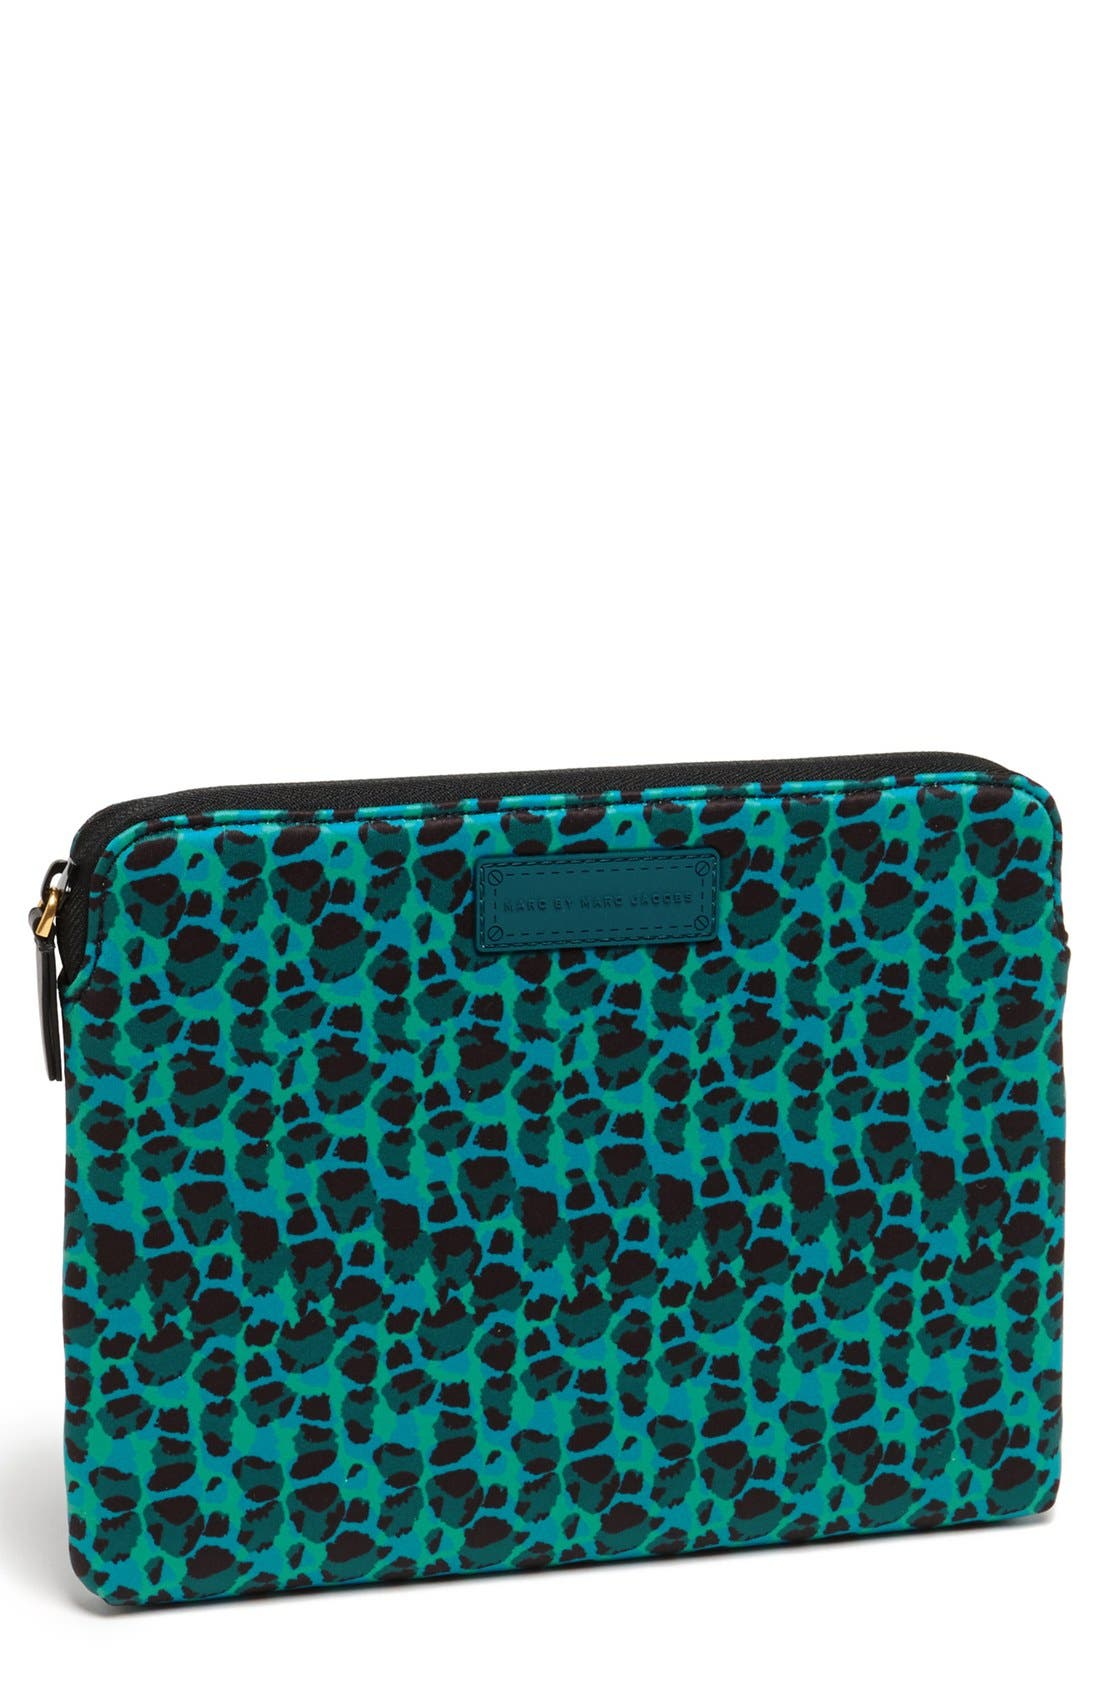 Main Image - MARC BY MARC JACOBS 'Walk a Thin Line' Tablet Case